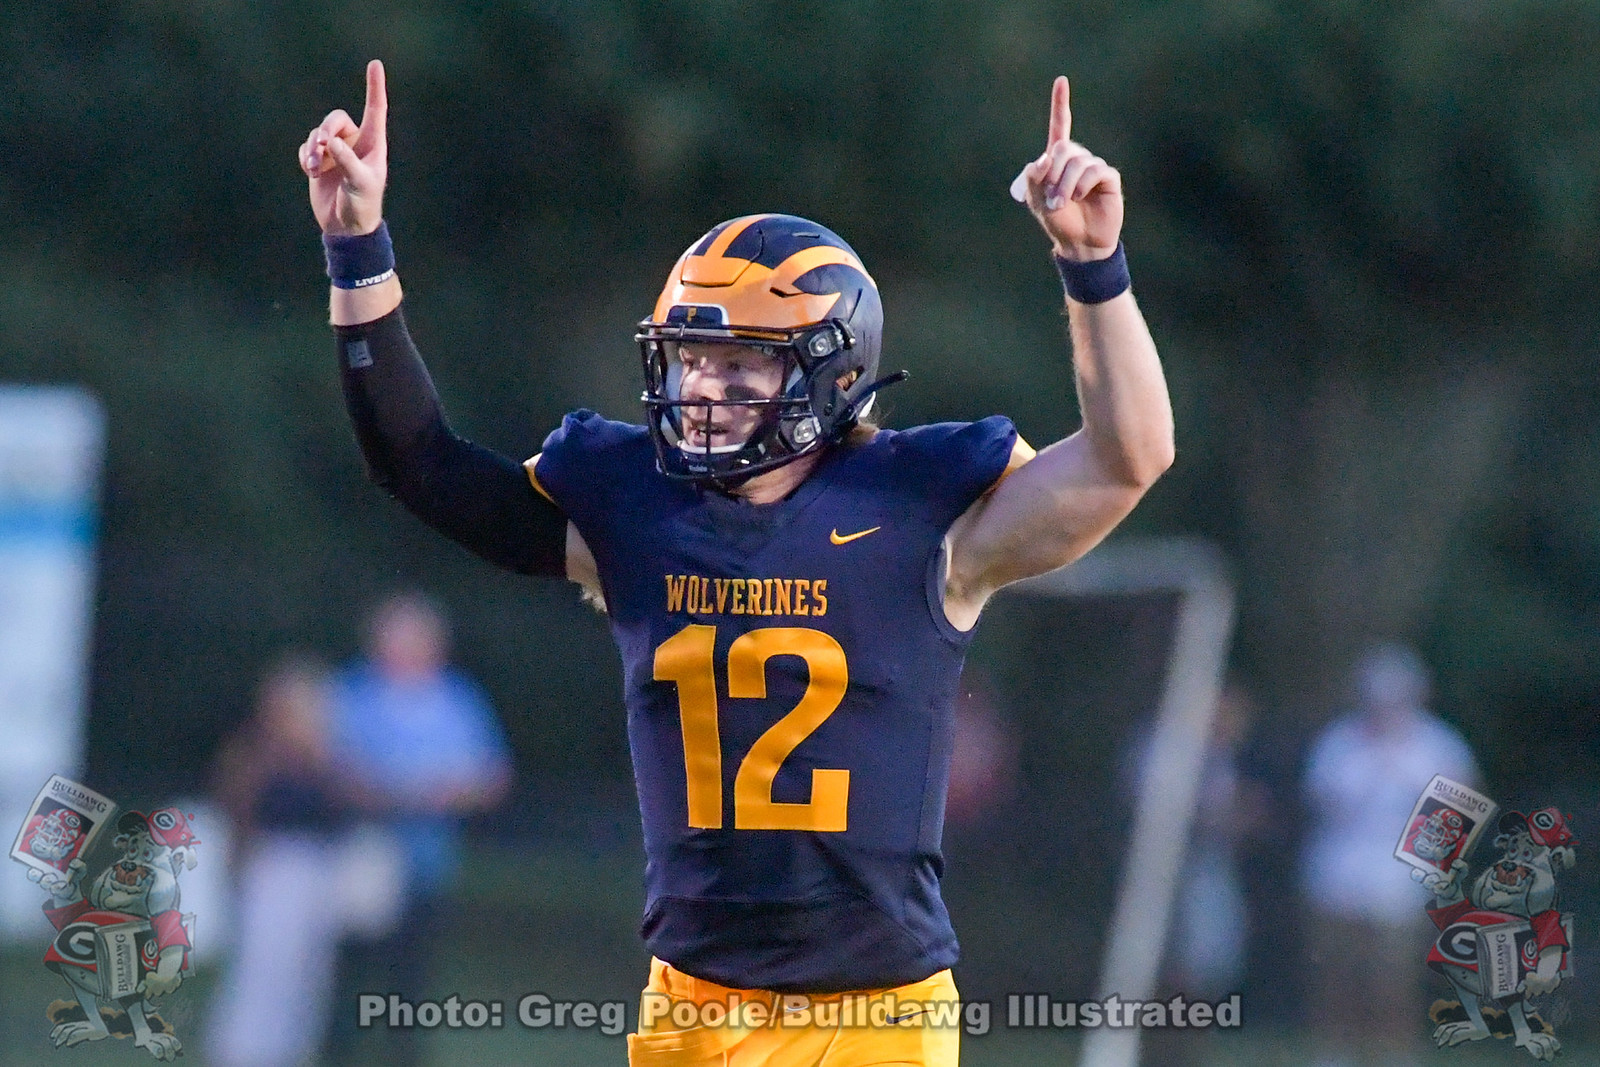 UGA quarterback commit Brock Vandagriff during his game between Prince Avenue Christian School and Calvary Christian played September 04, 2020